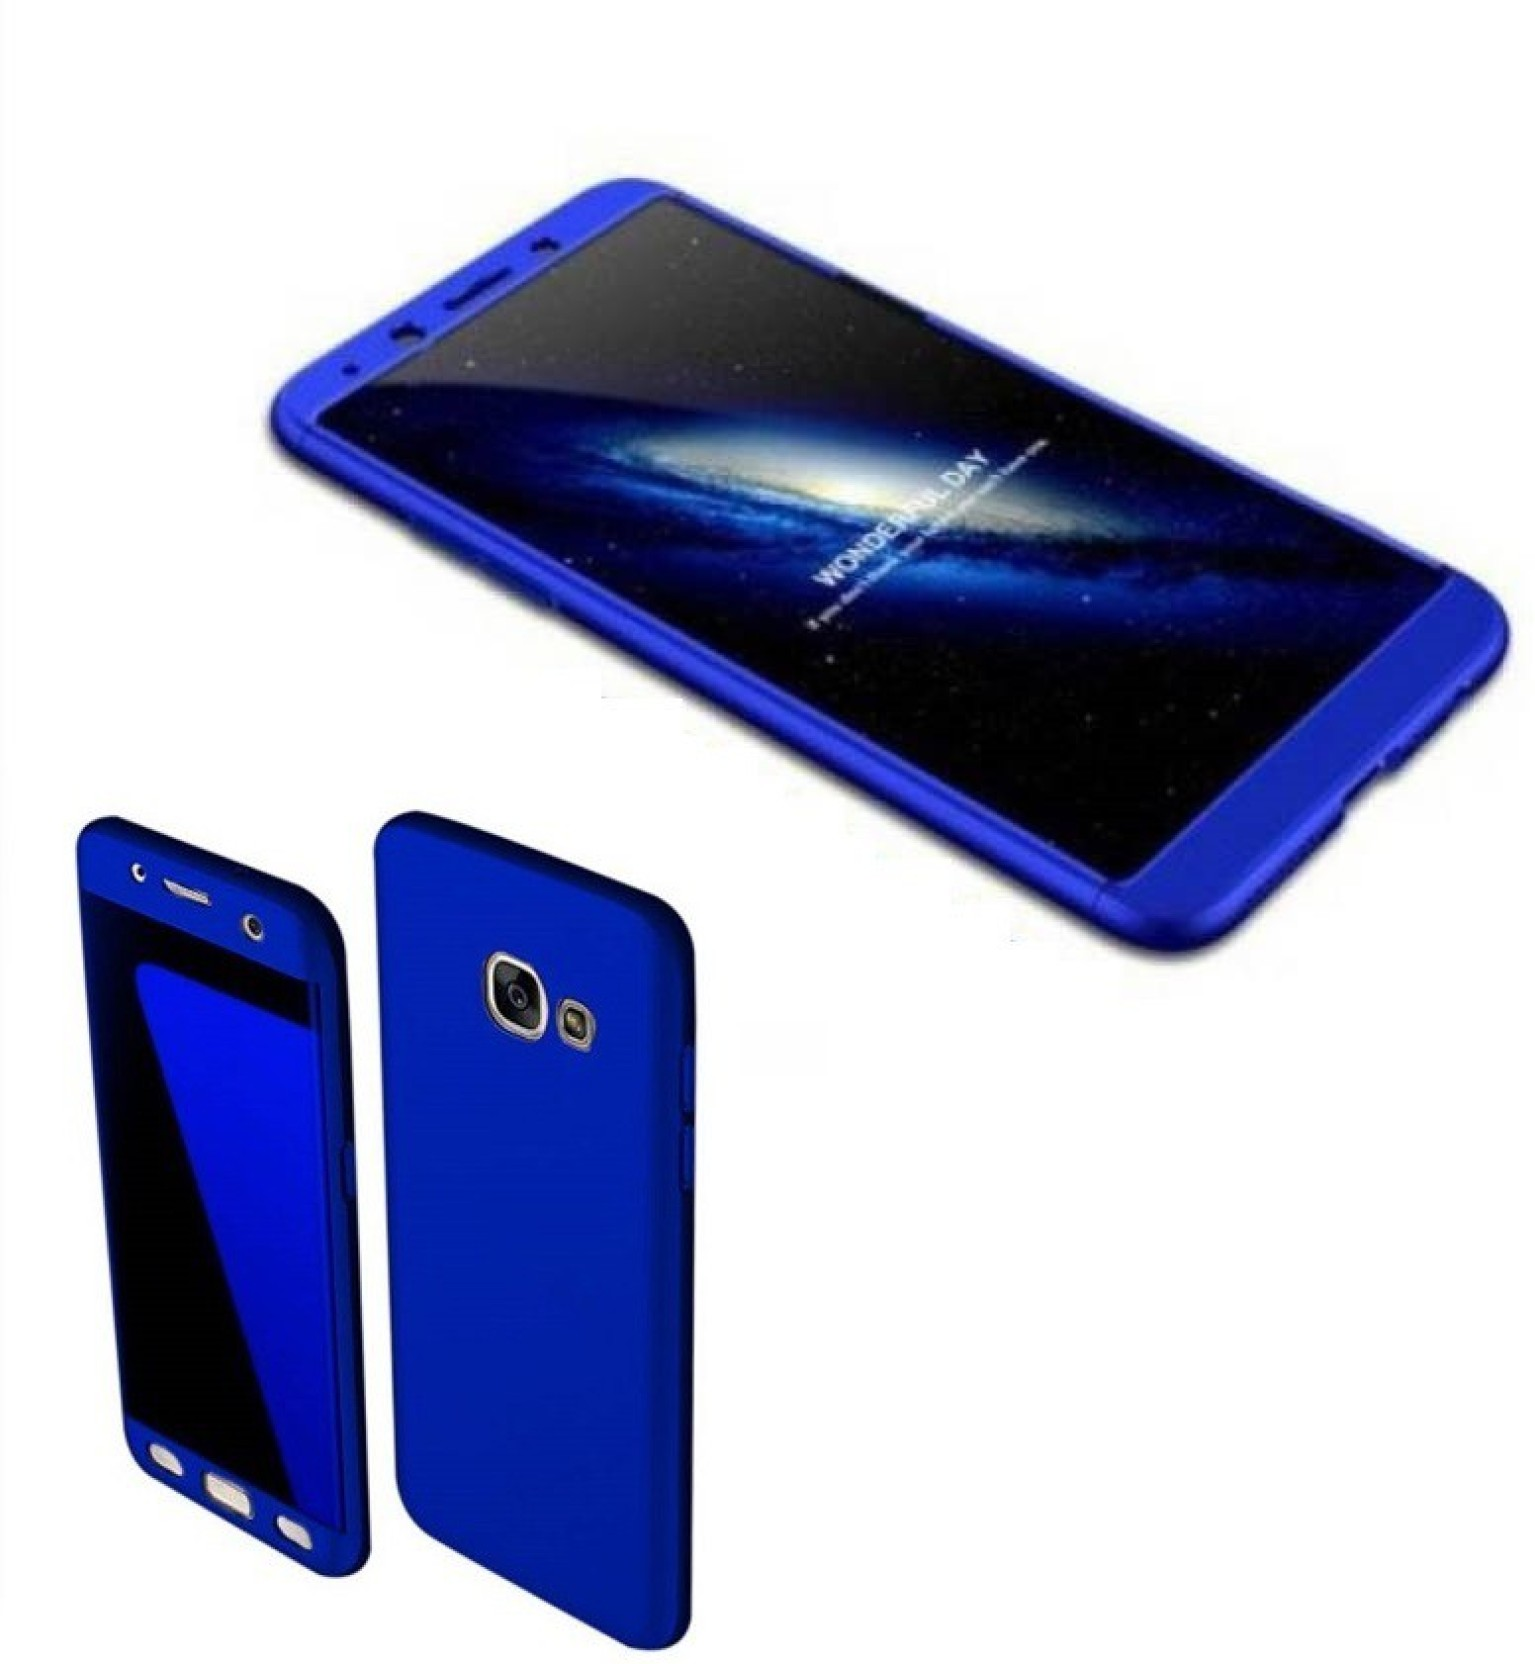 ed816a2b7b1 COVERBLACK Back Cover for Samsung Galaxy J7 Max - SM-G615FZDDINS Ipaky 360  (Royal Blue